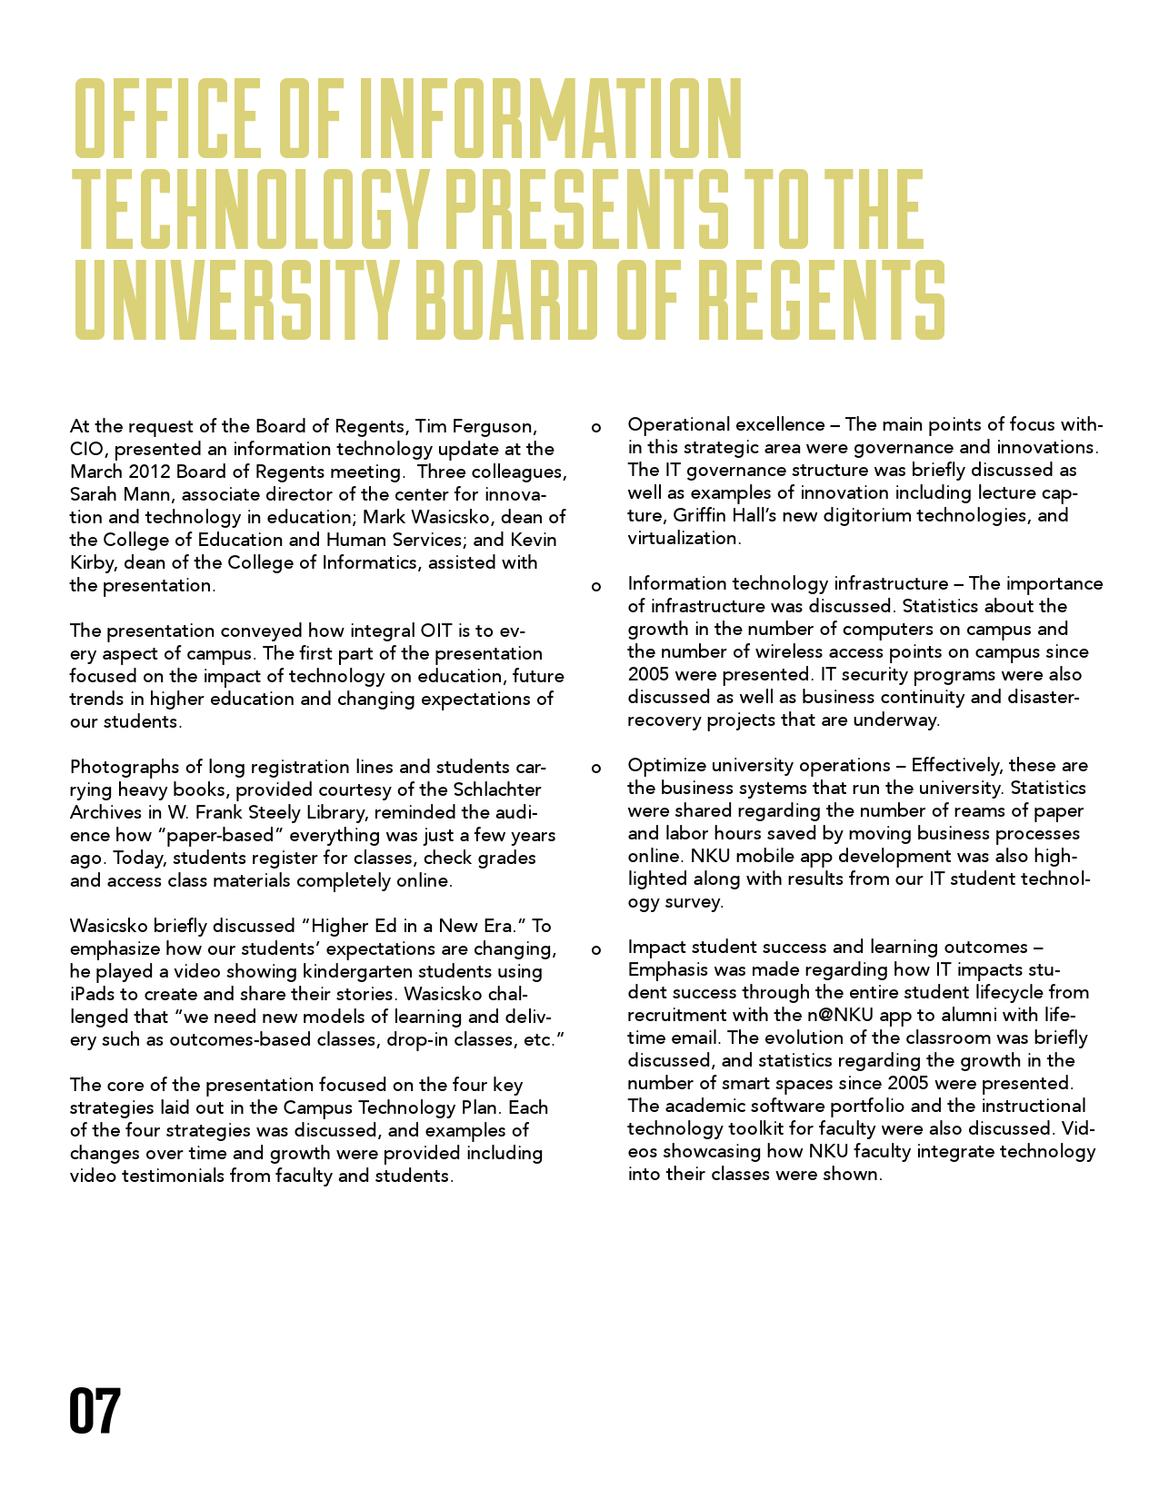 Nku Office Of Information Technology 2011 2012 Annual Report By Nku